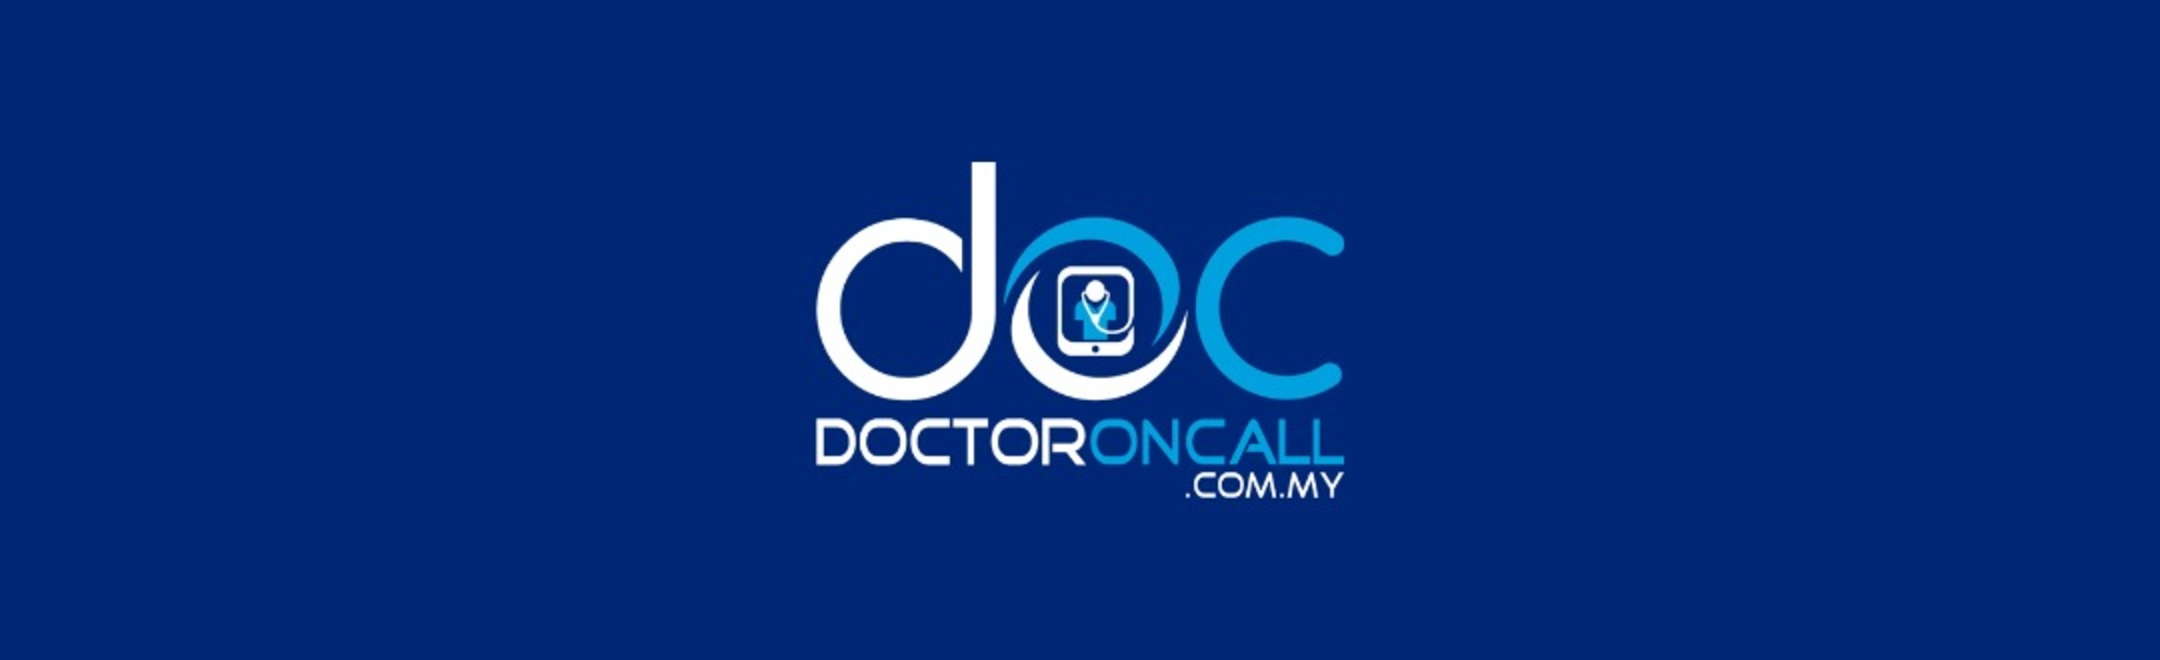 DoctorOnCall partners with Shopee to offer more Covid-19 test ...